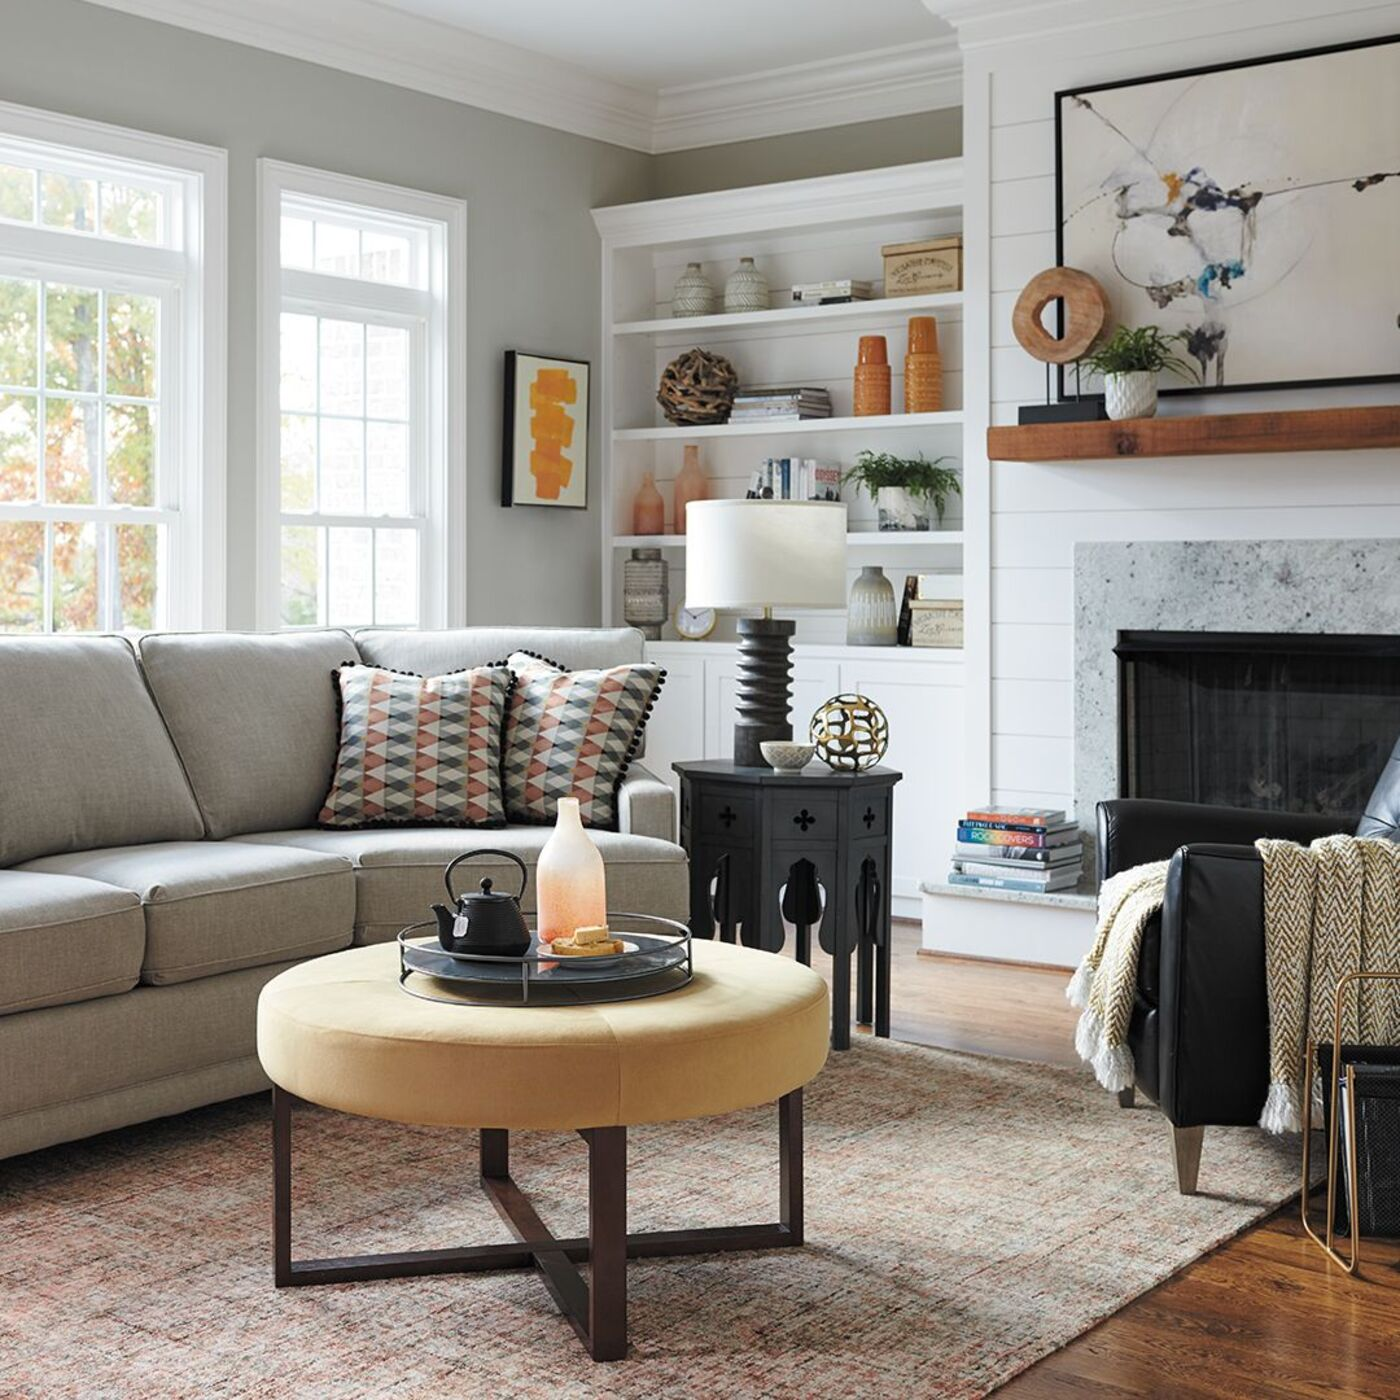 56f46c238d0 Are you looking for a list of furniture brands you'll be proud to bring into  your home? Finding the best fit for your home starts with selecting a  furniture ...